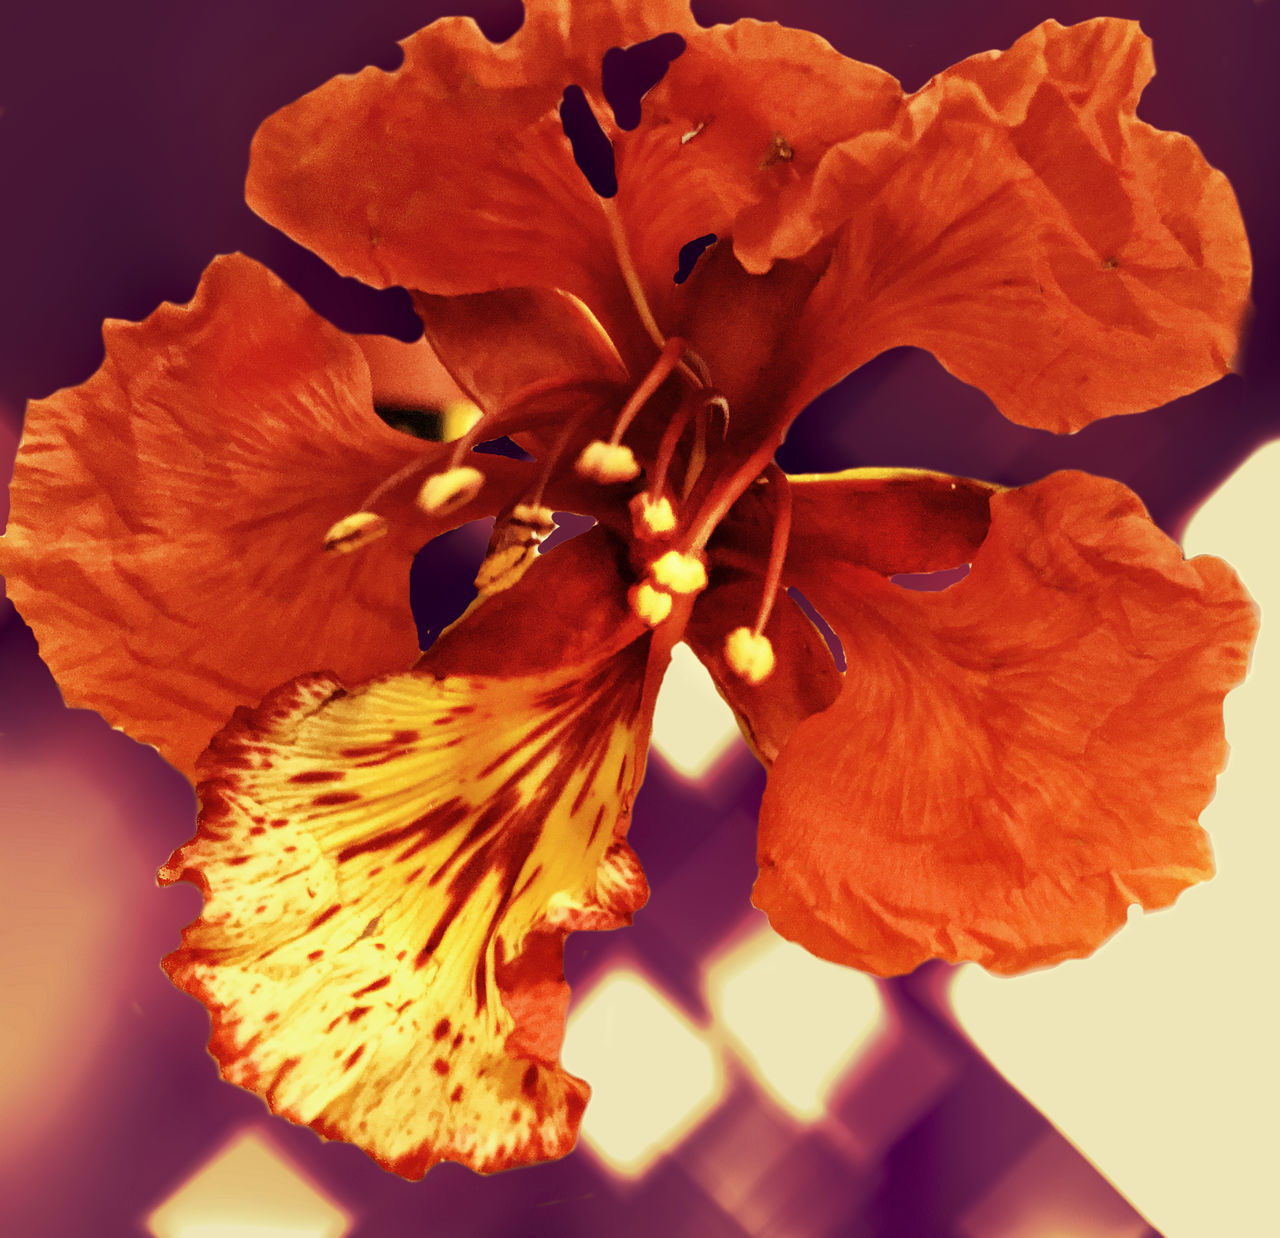 Beauty In Nature Close-up Day Day Lily Flower Flower Head Fragility Freshness Growth Hibiscus Nature No People Outdoors Petal Plant Soft Focus Stamen